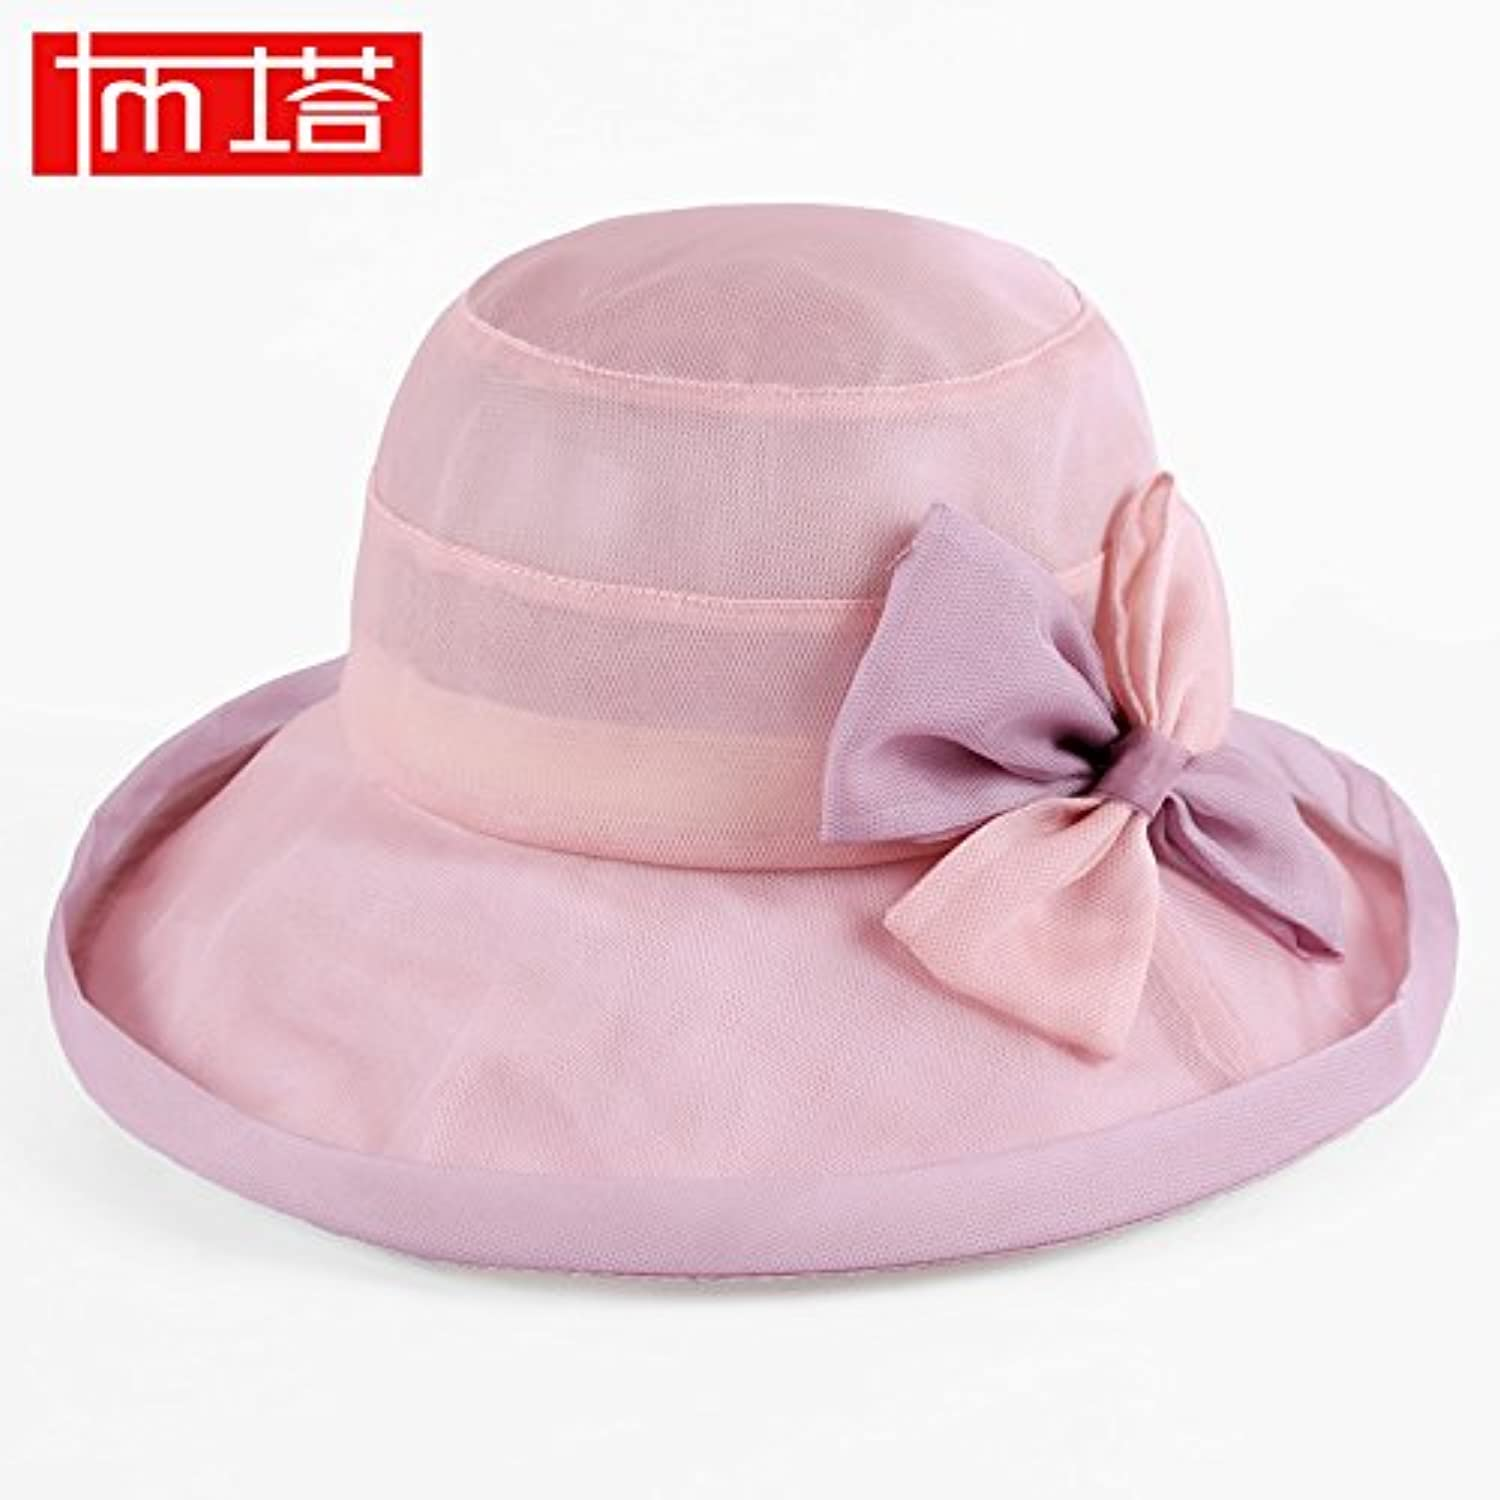 MSZYZSunscreen hat Female Sunshade Cap Female Guard Against Ultrapurple Radiation Beach Cap